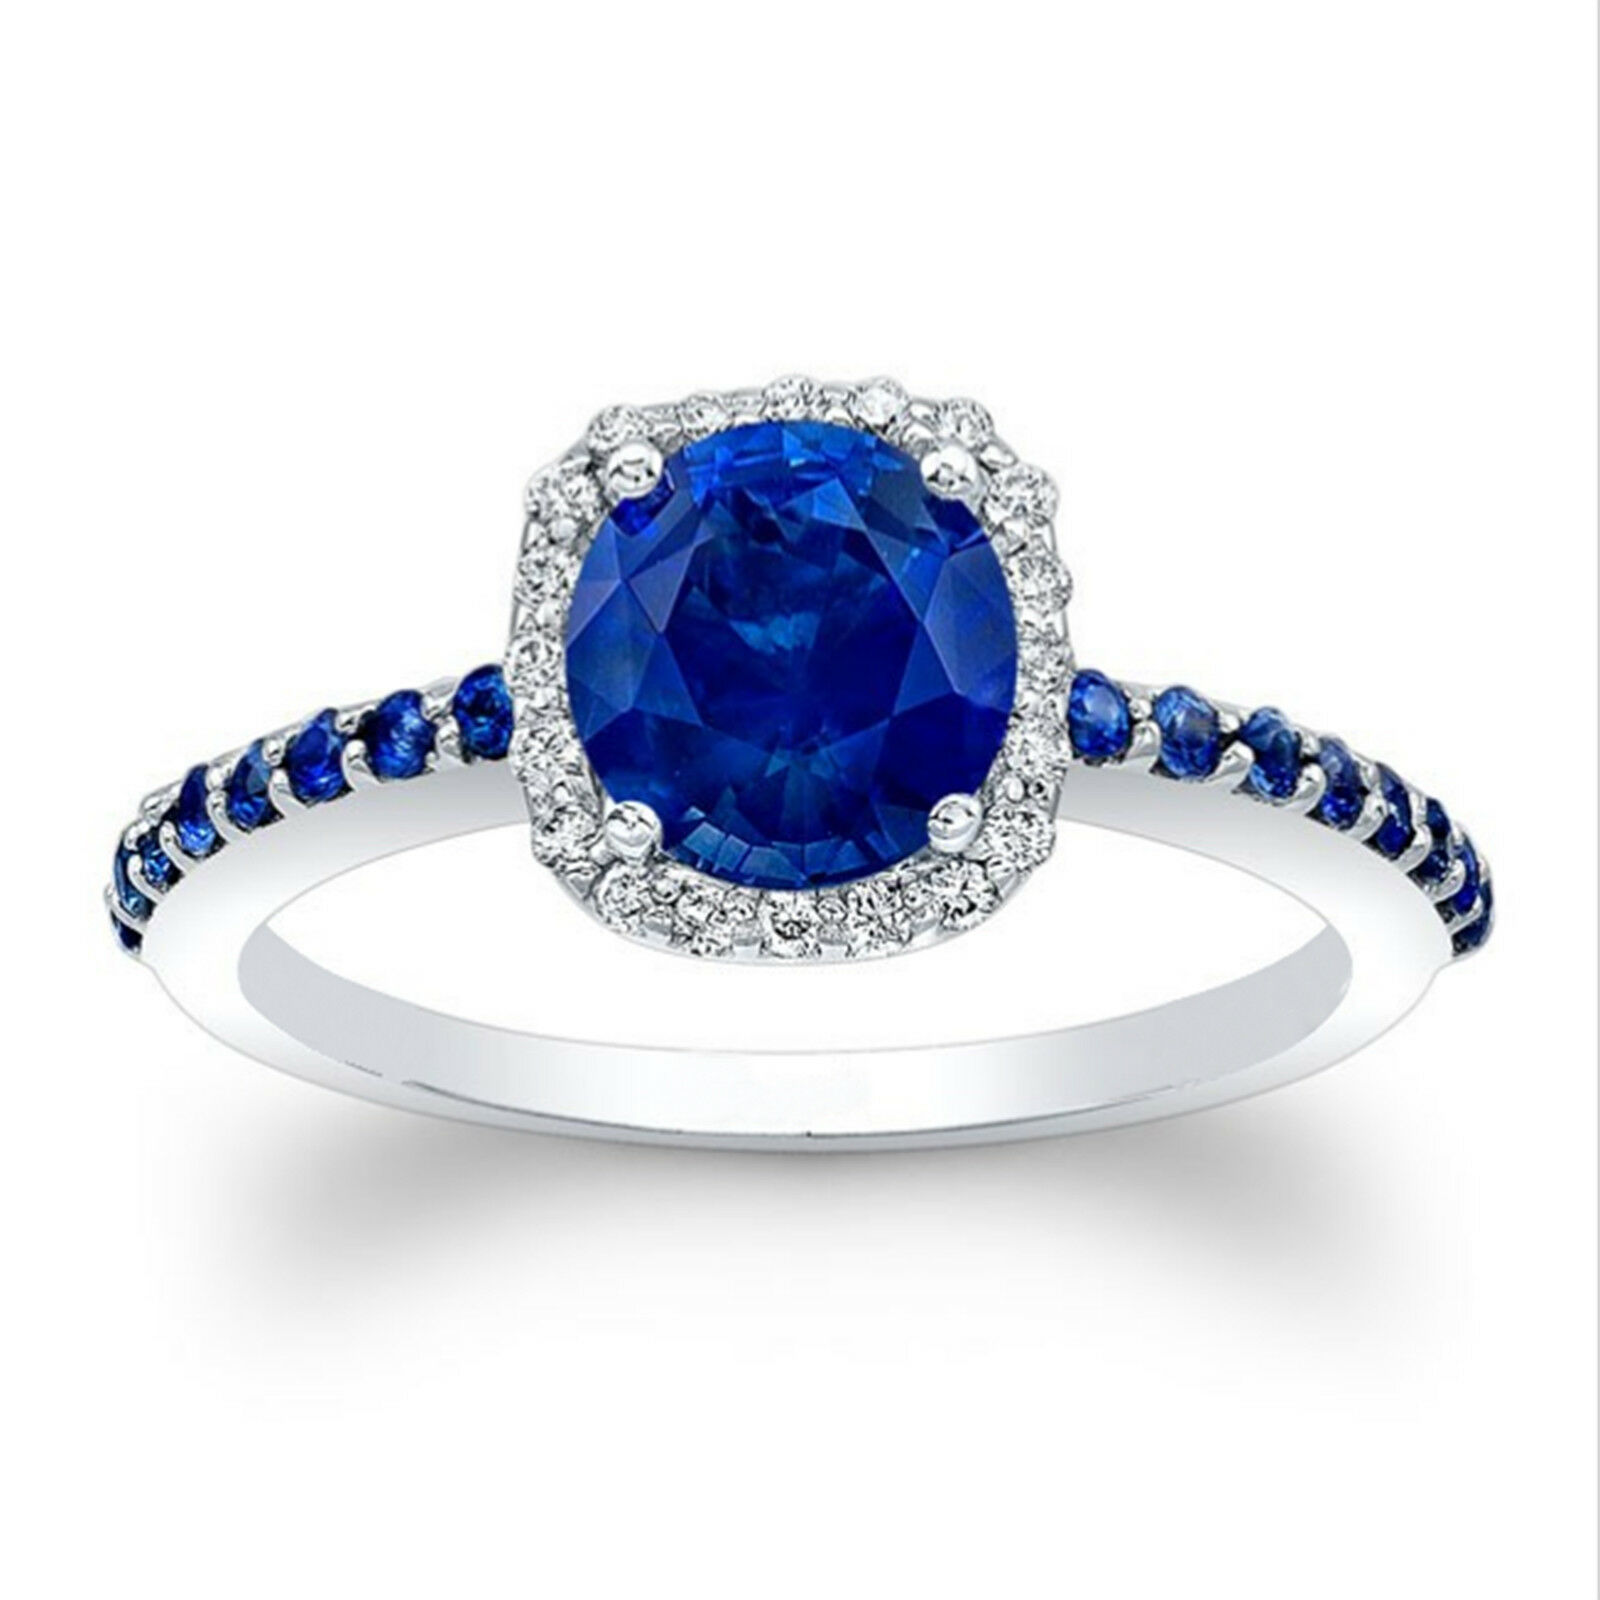 1.75 Ct Round Natural blueee Sapphire Ring 14K White gold Diamond Rings Size 6 7 8